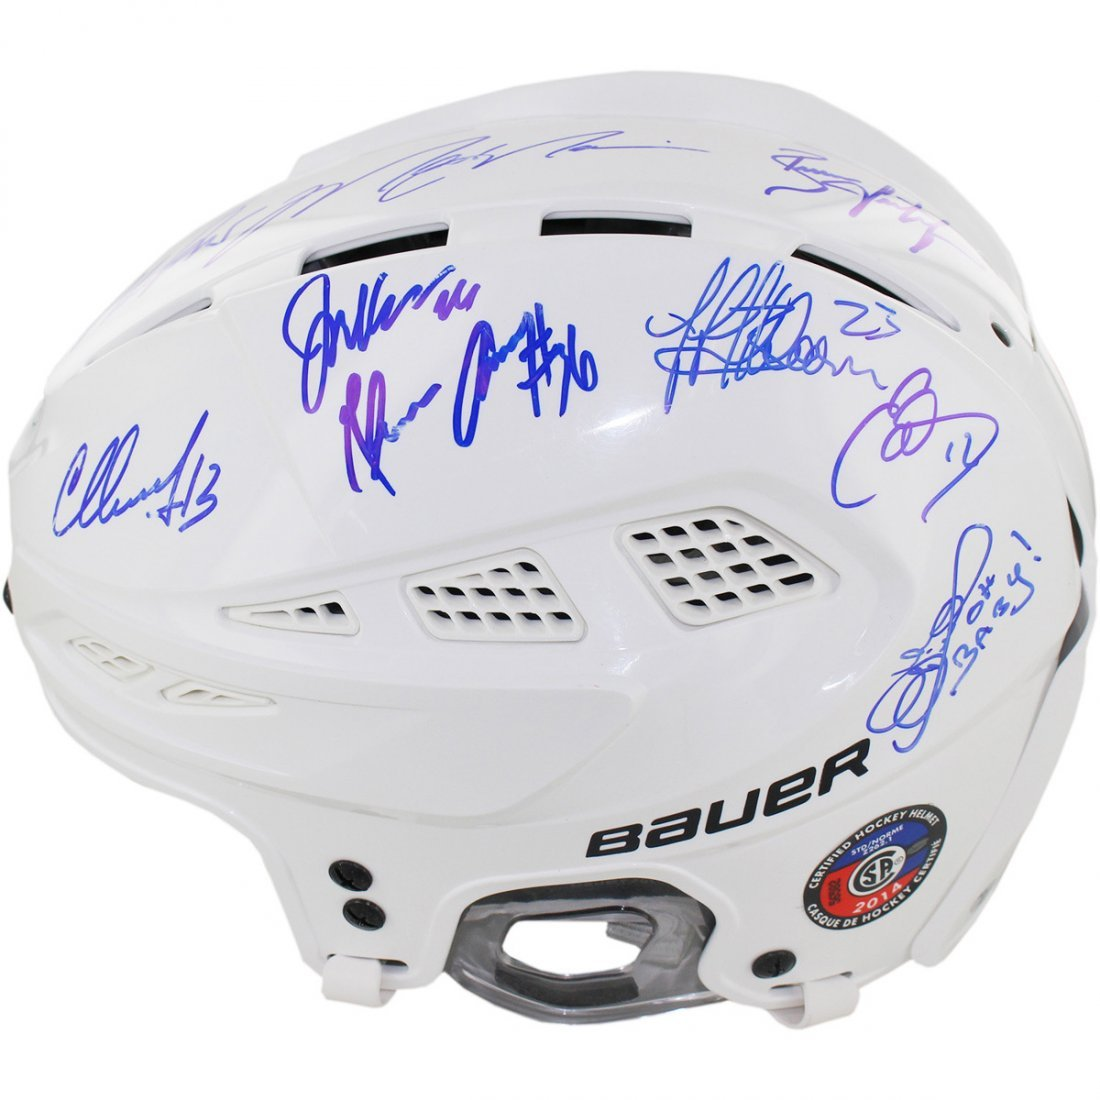 1994 New York Rangers Team Signed Helmet (LE of 24) (16